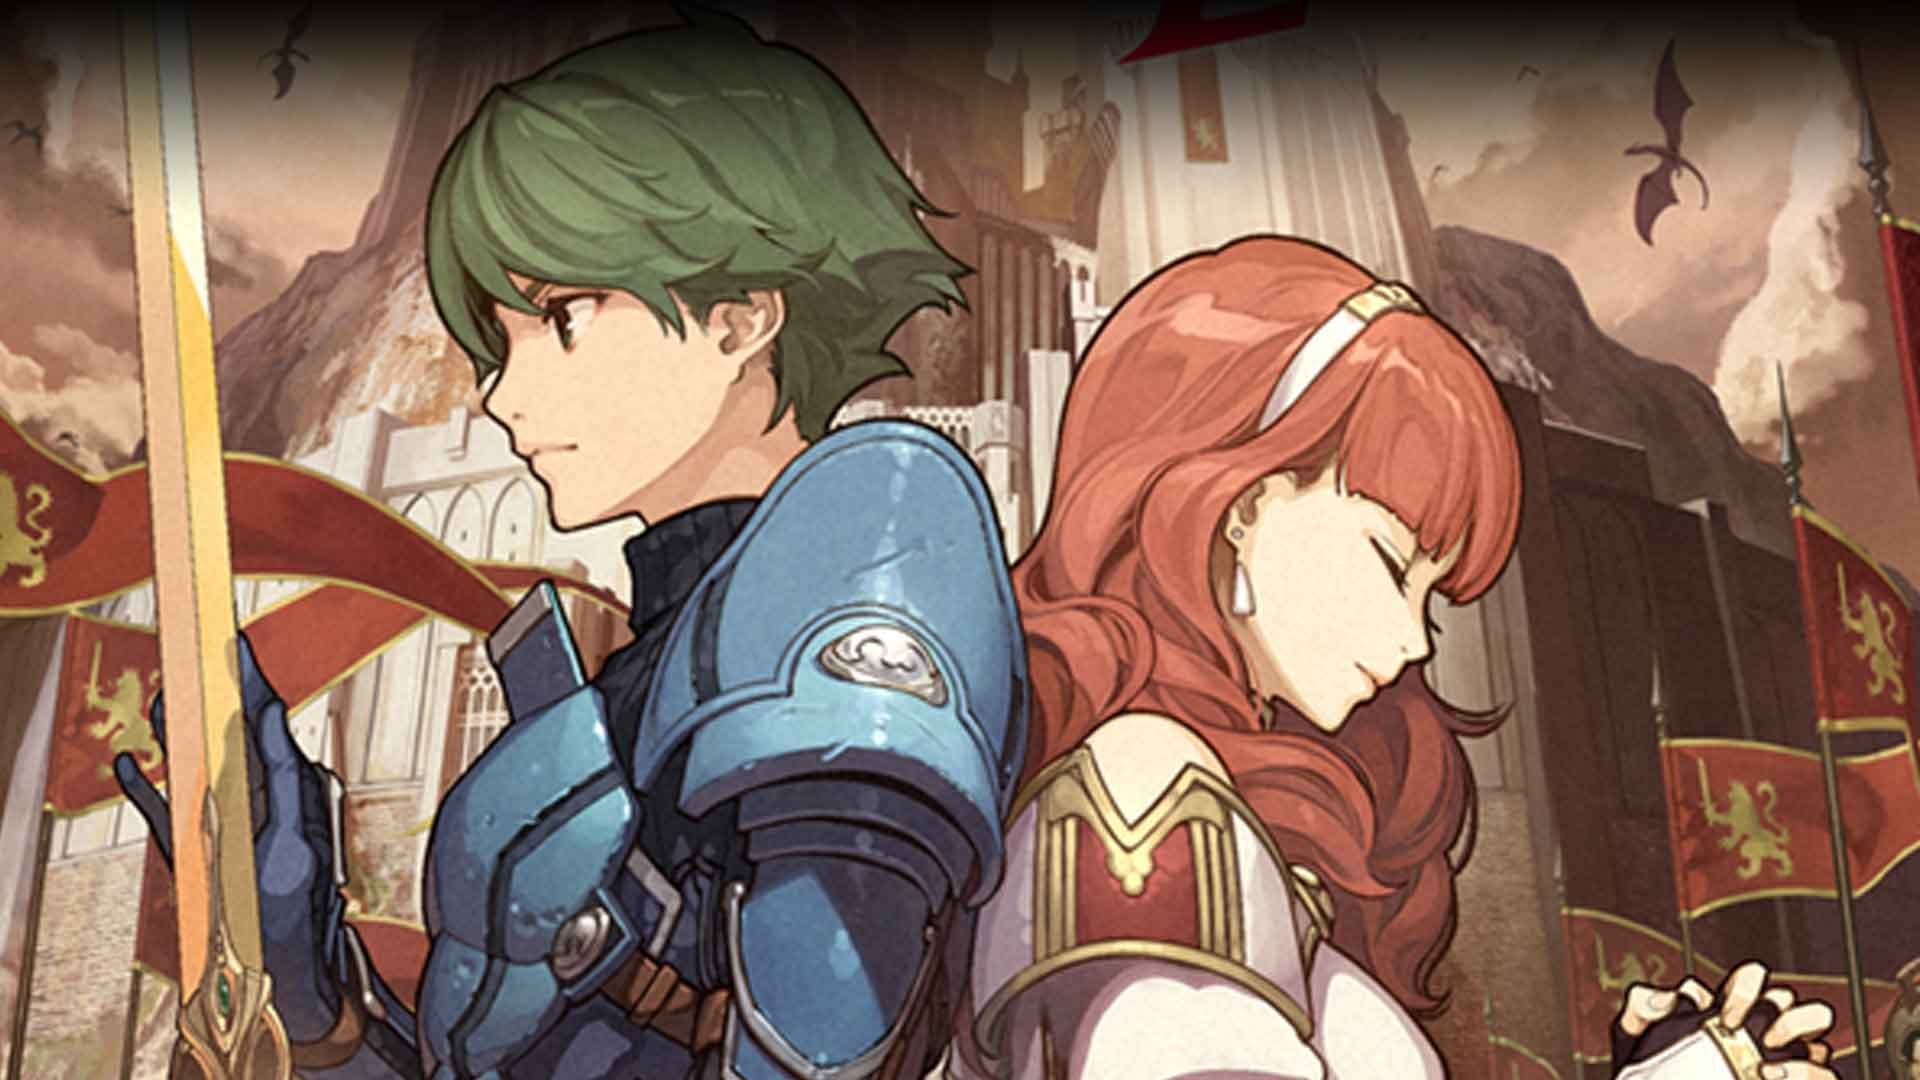 Modojo | Fire Emblem Echoes' Day One DLC For An NES Remake Is A Bit Sleazy